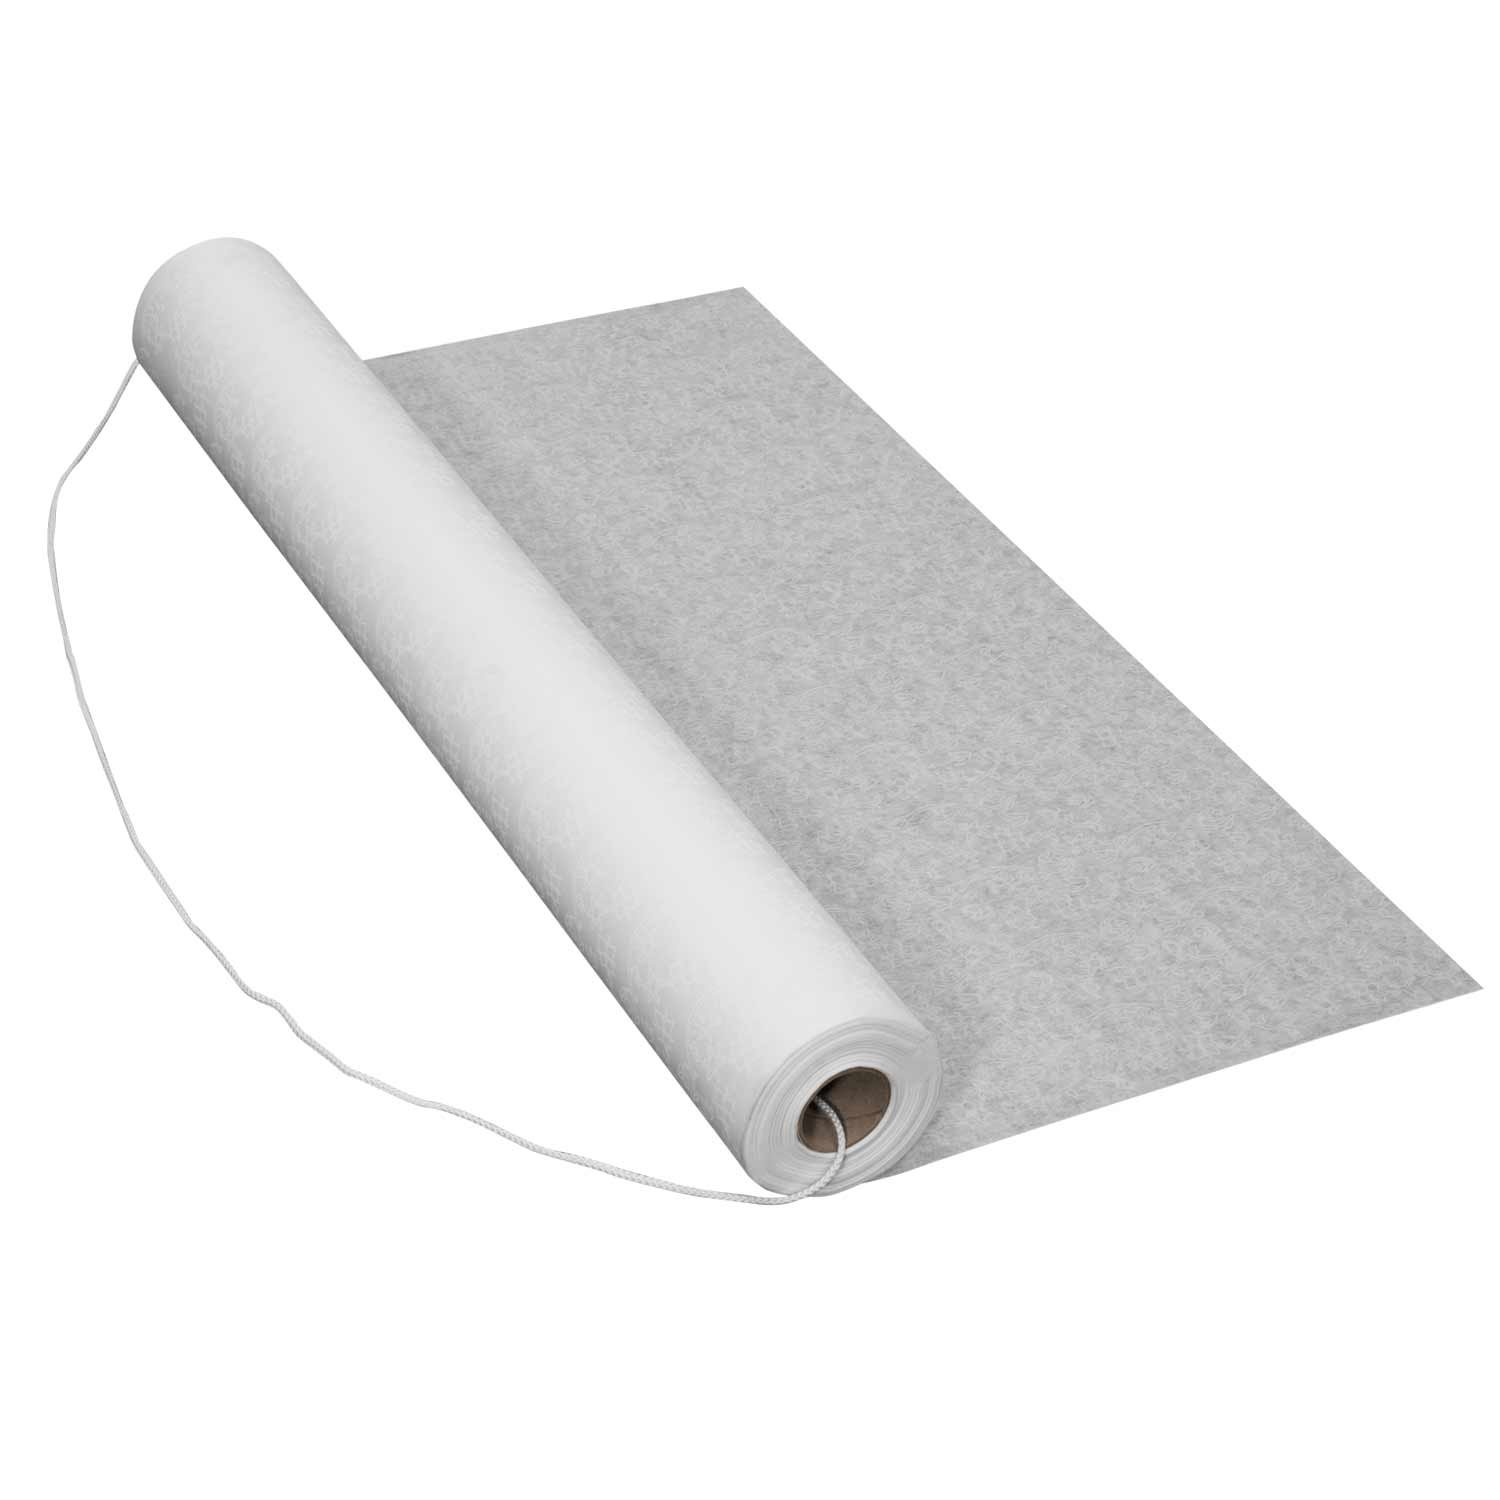 Party Essentials FL50-14 Floral Lace Aisle Runner, 50' Length x 36'' Width, White (Case of 14)